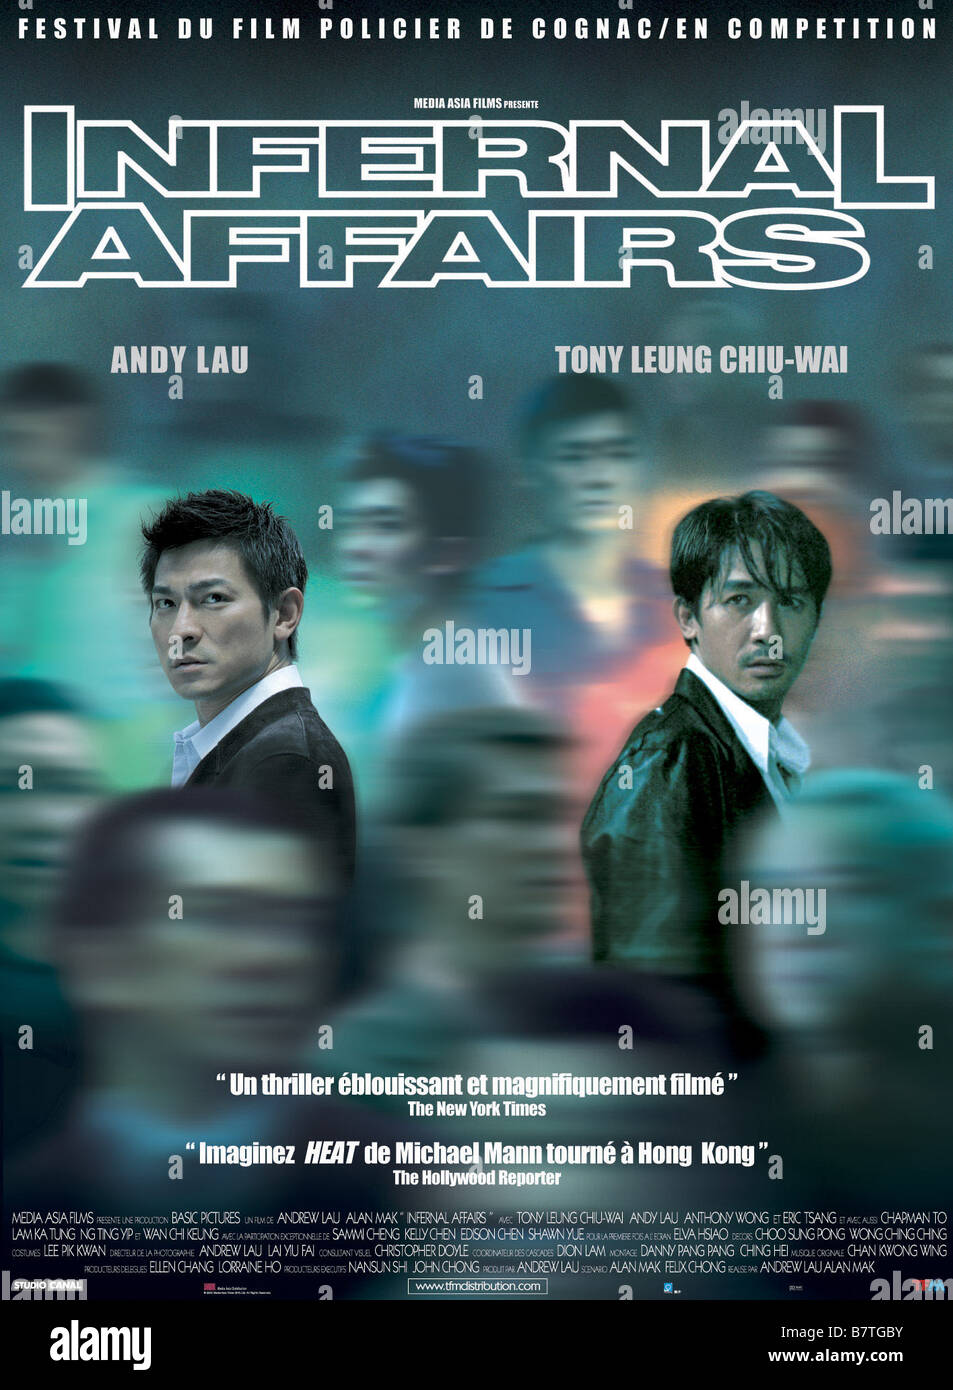 Infernal Affairs Mou gaan dou Year: 2002 Hong Kong Director: Wai Keung Lau, Siu Fai Mak  Movie poster (Fr) - Stock Image